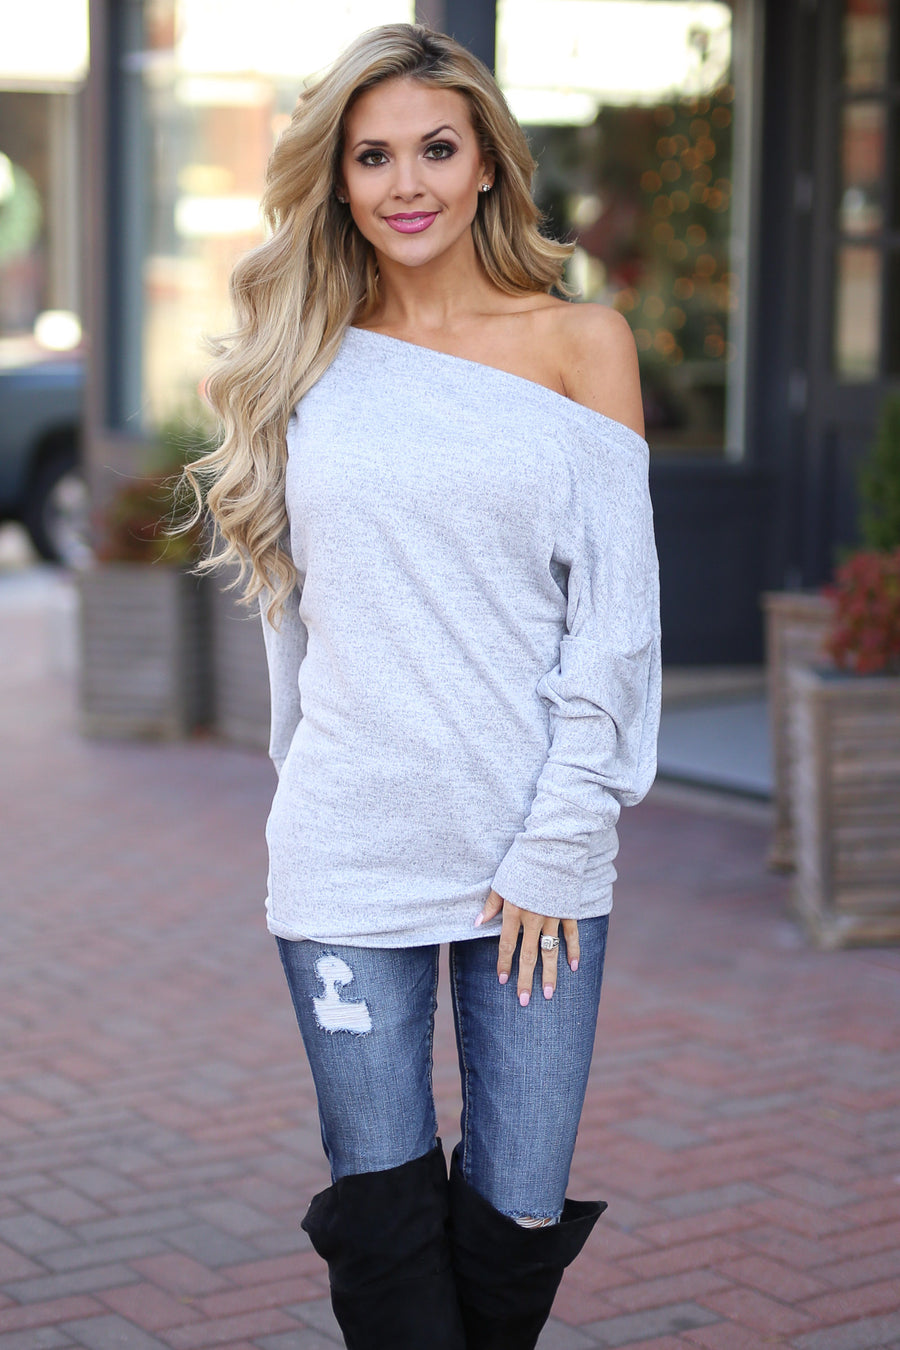 Brush It Off Top - Heather Grey long sleeve off the shoulder top, Closet Candy Boutique 1